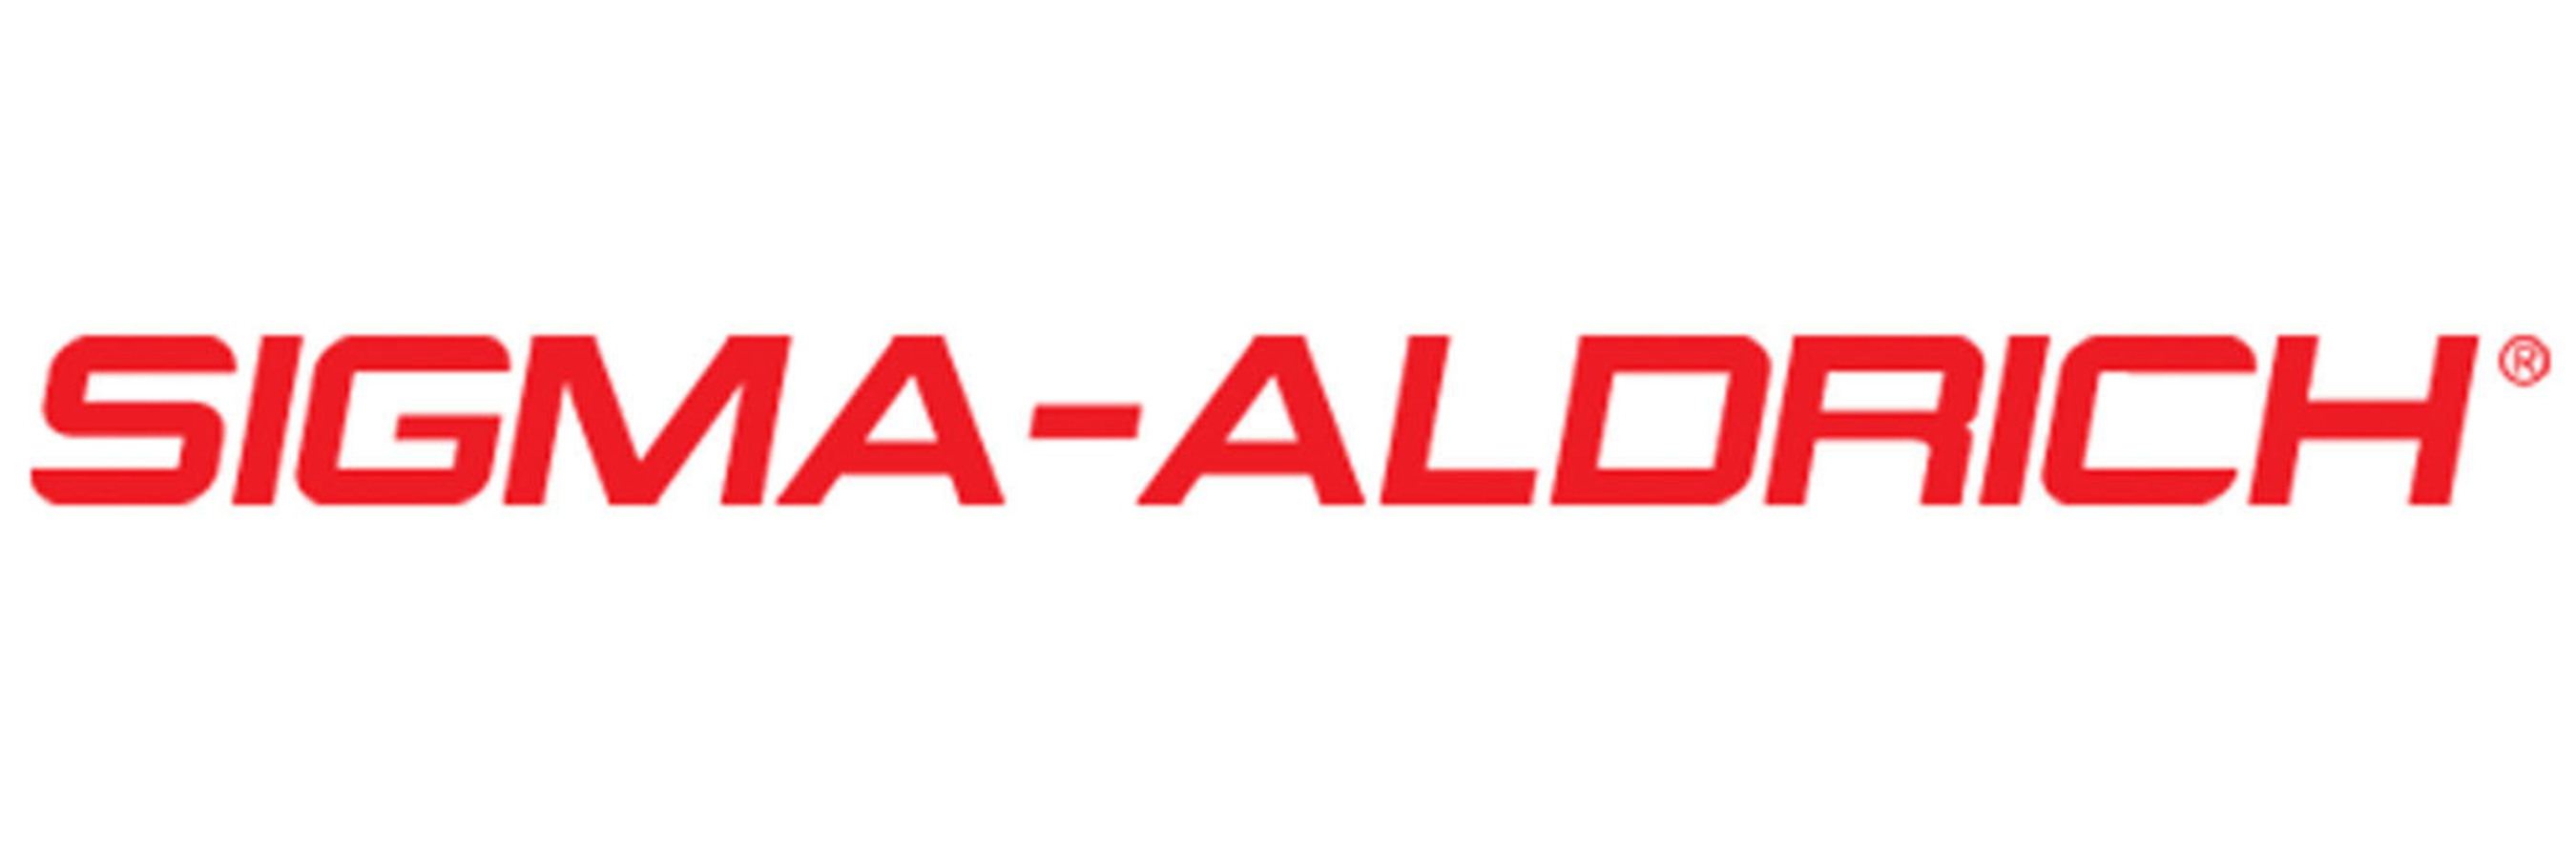 Sigma-Aldrich (NASDAQ - SIAL) Reports Q3 2015 Sales Of $703 Million And Adjusted Diluted EPS Of